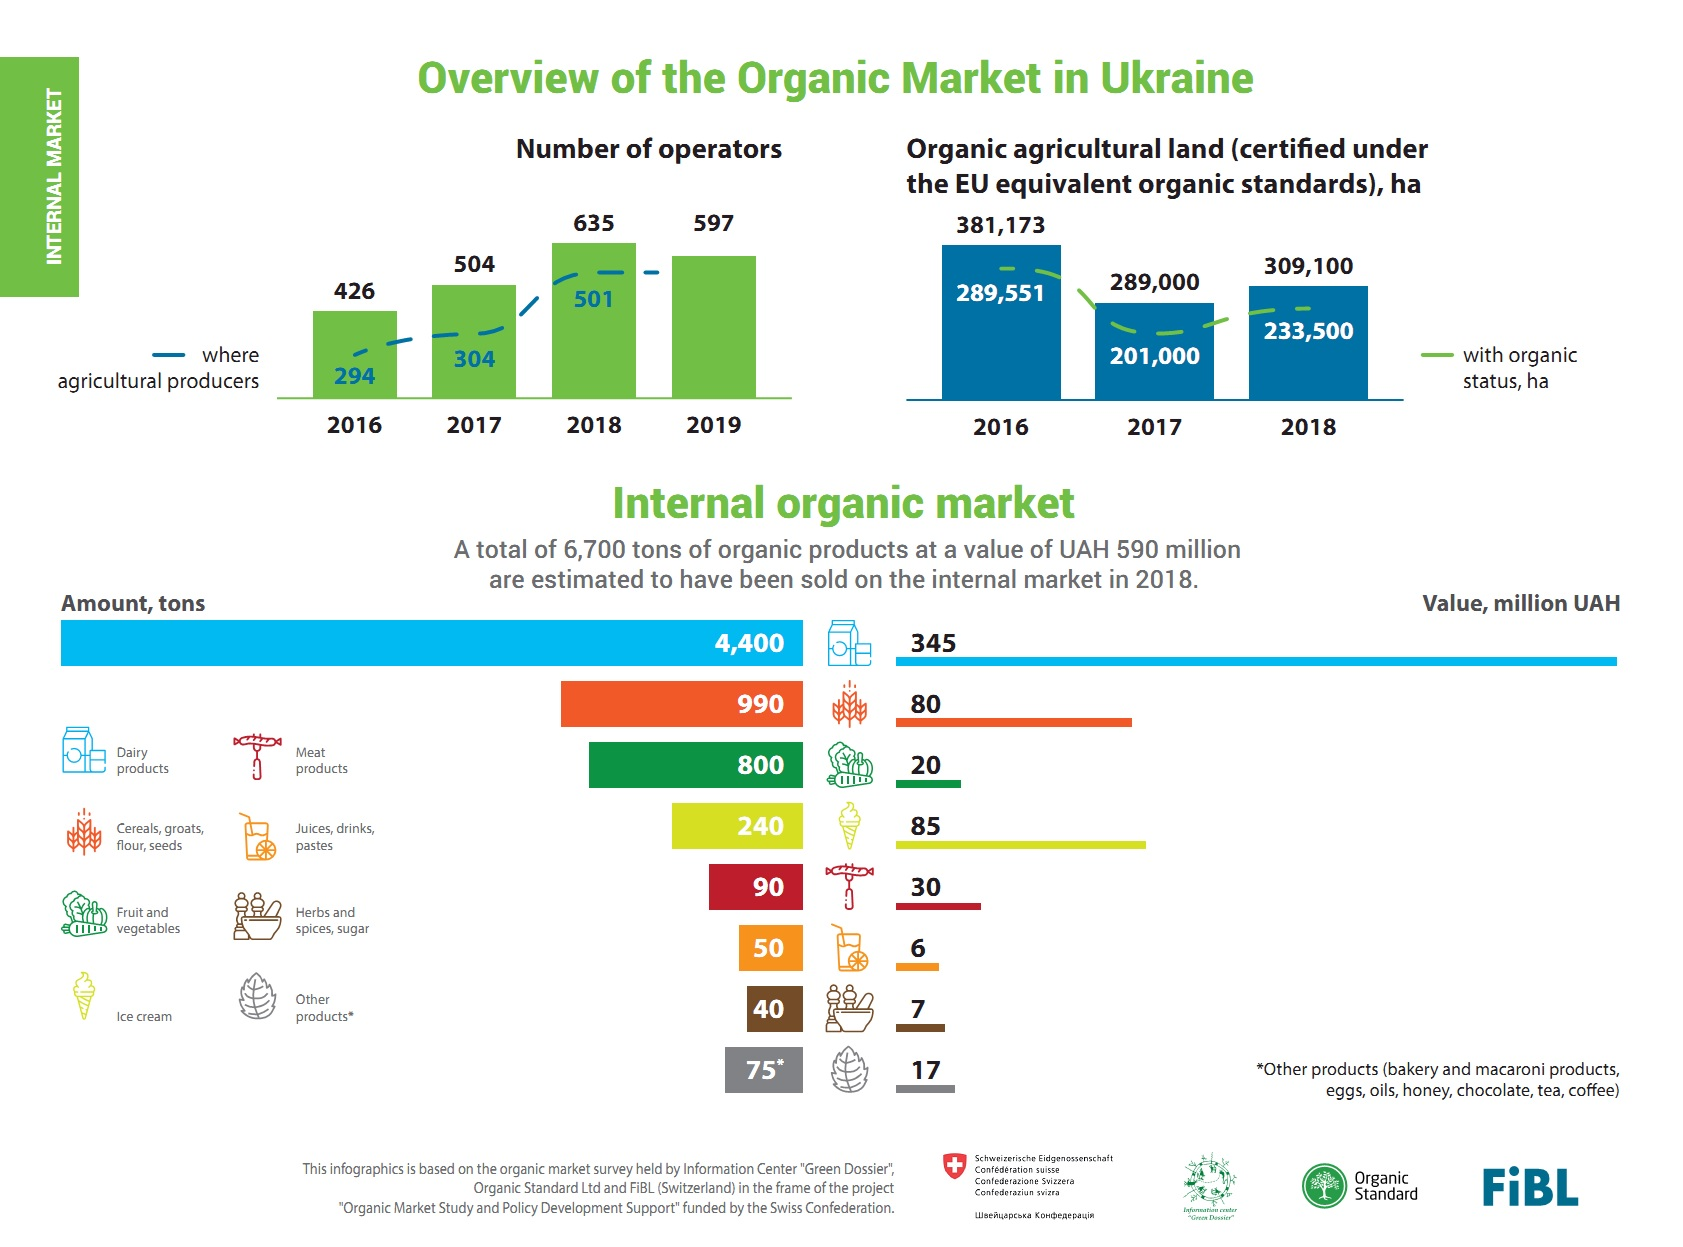 Organic market in Ukraine (click for full resolution)